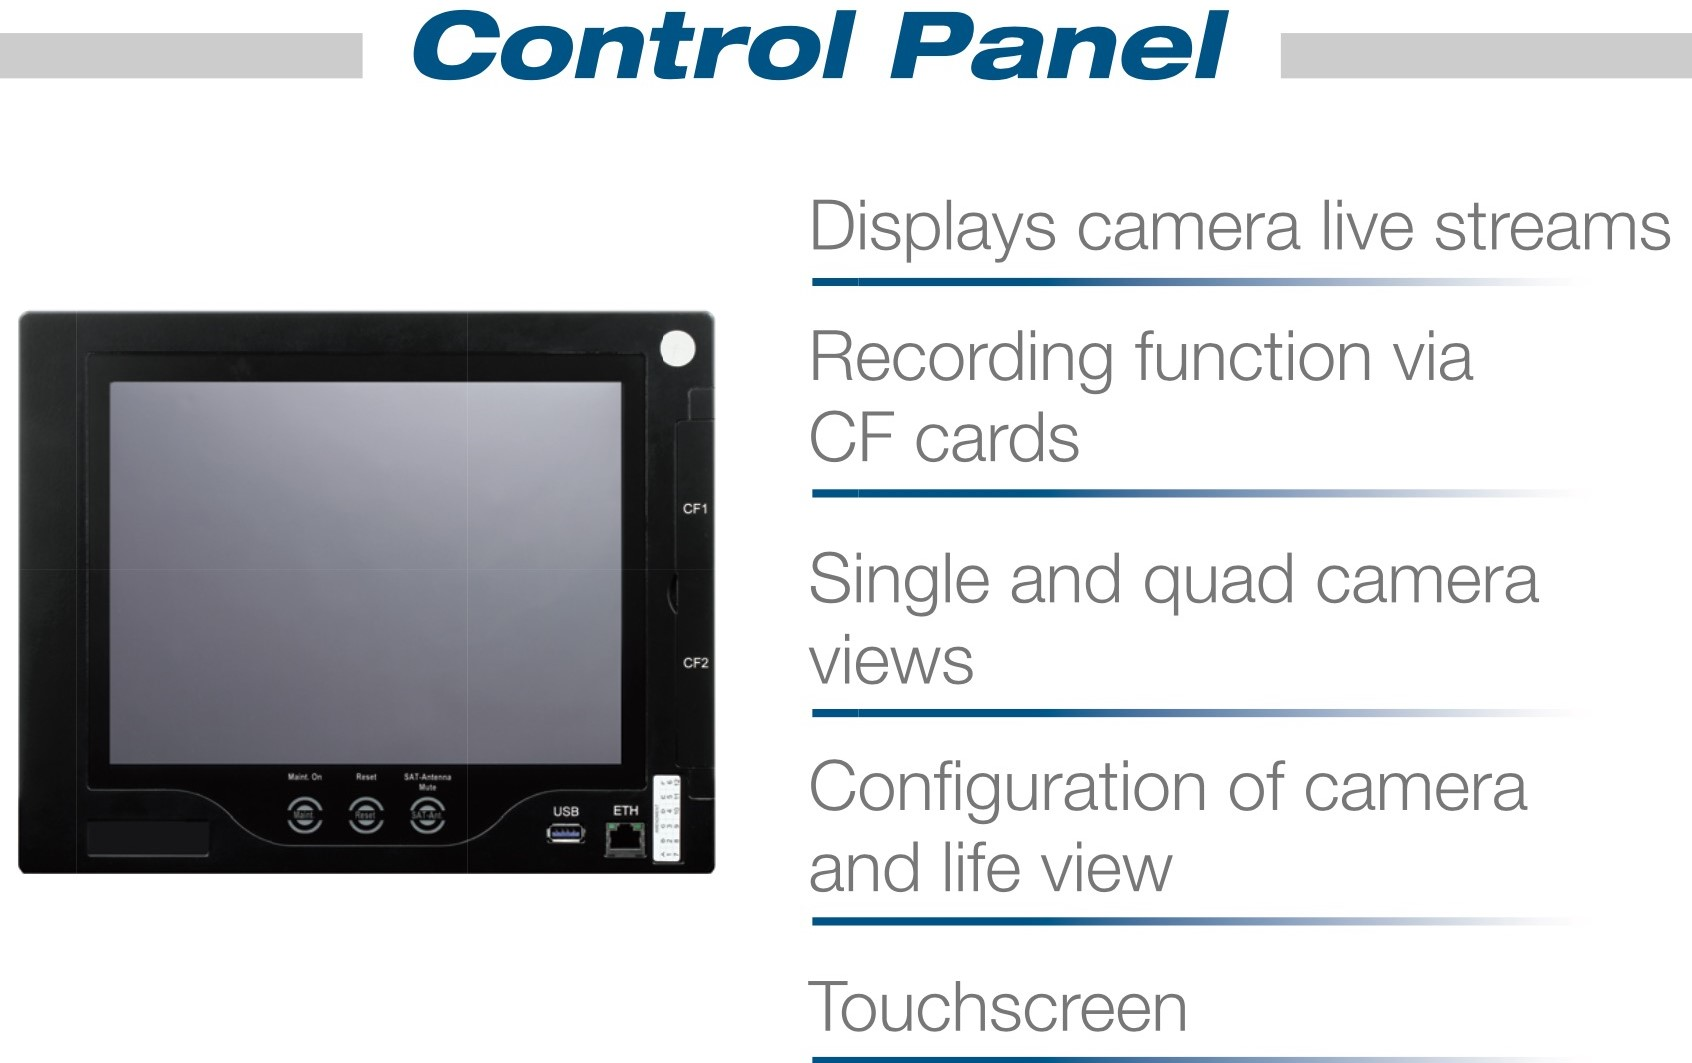 The system can either be intergrated into existing cabin management panels or controlled seperately.